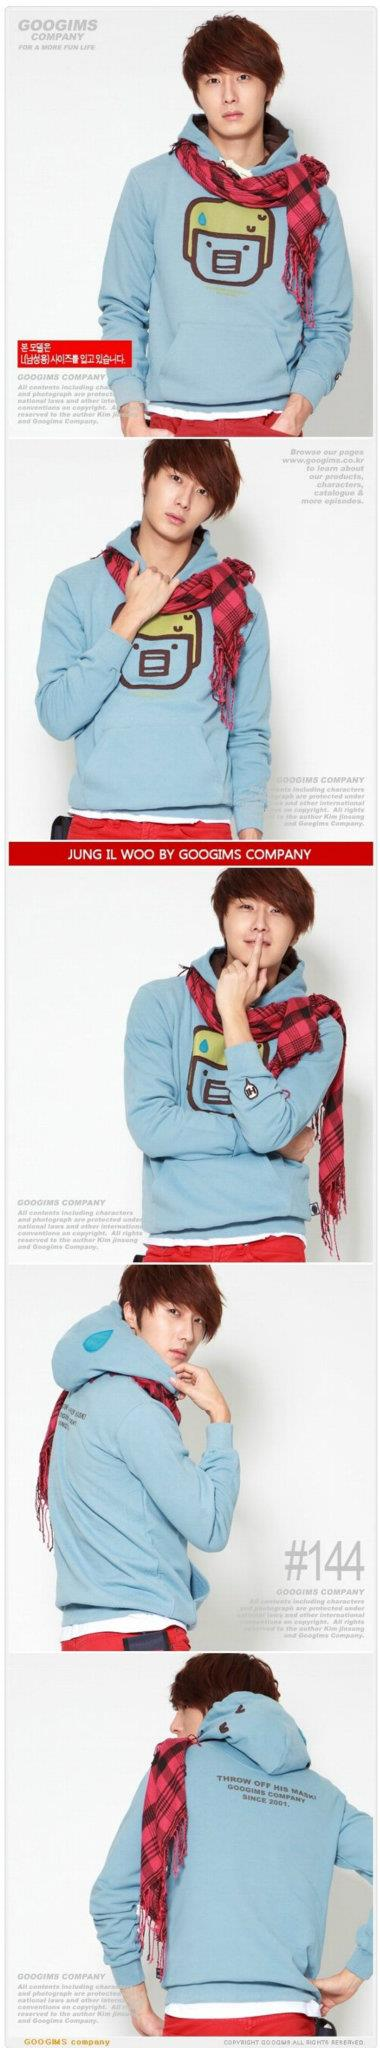 2011 10 Jung II-woo for Googims. Part 100007